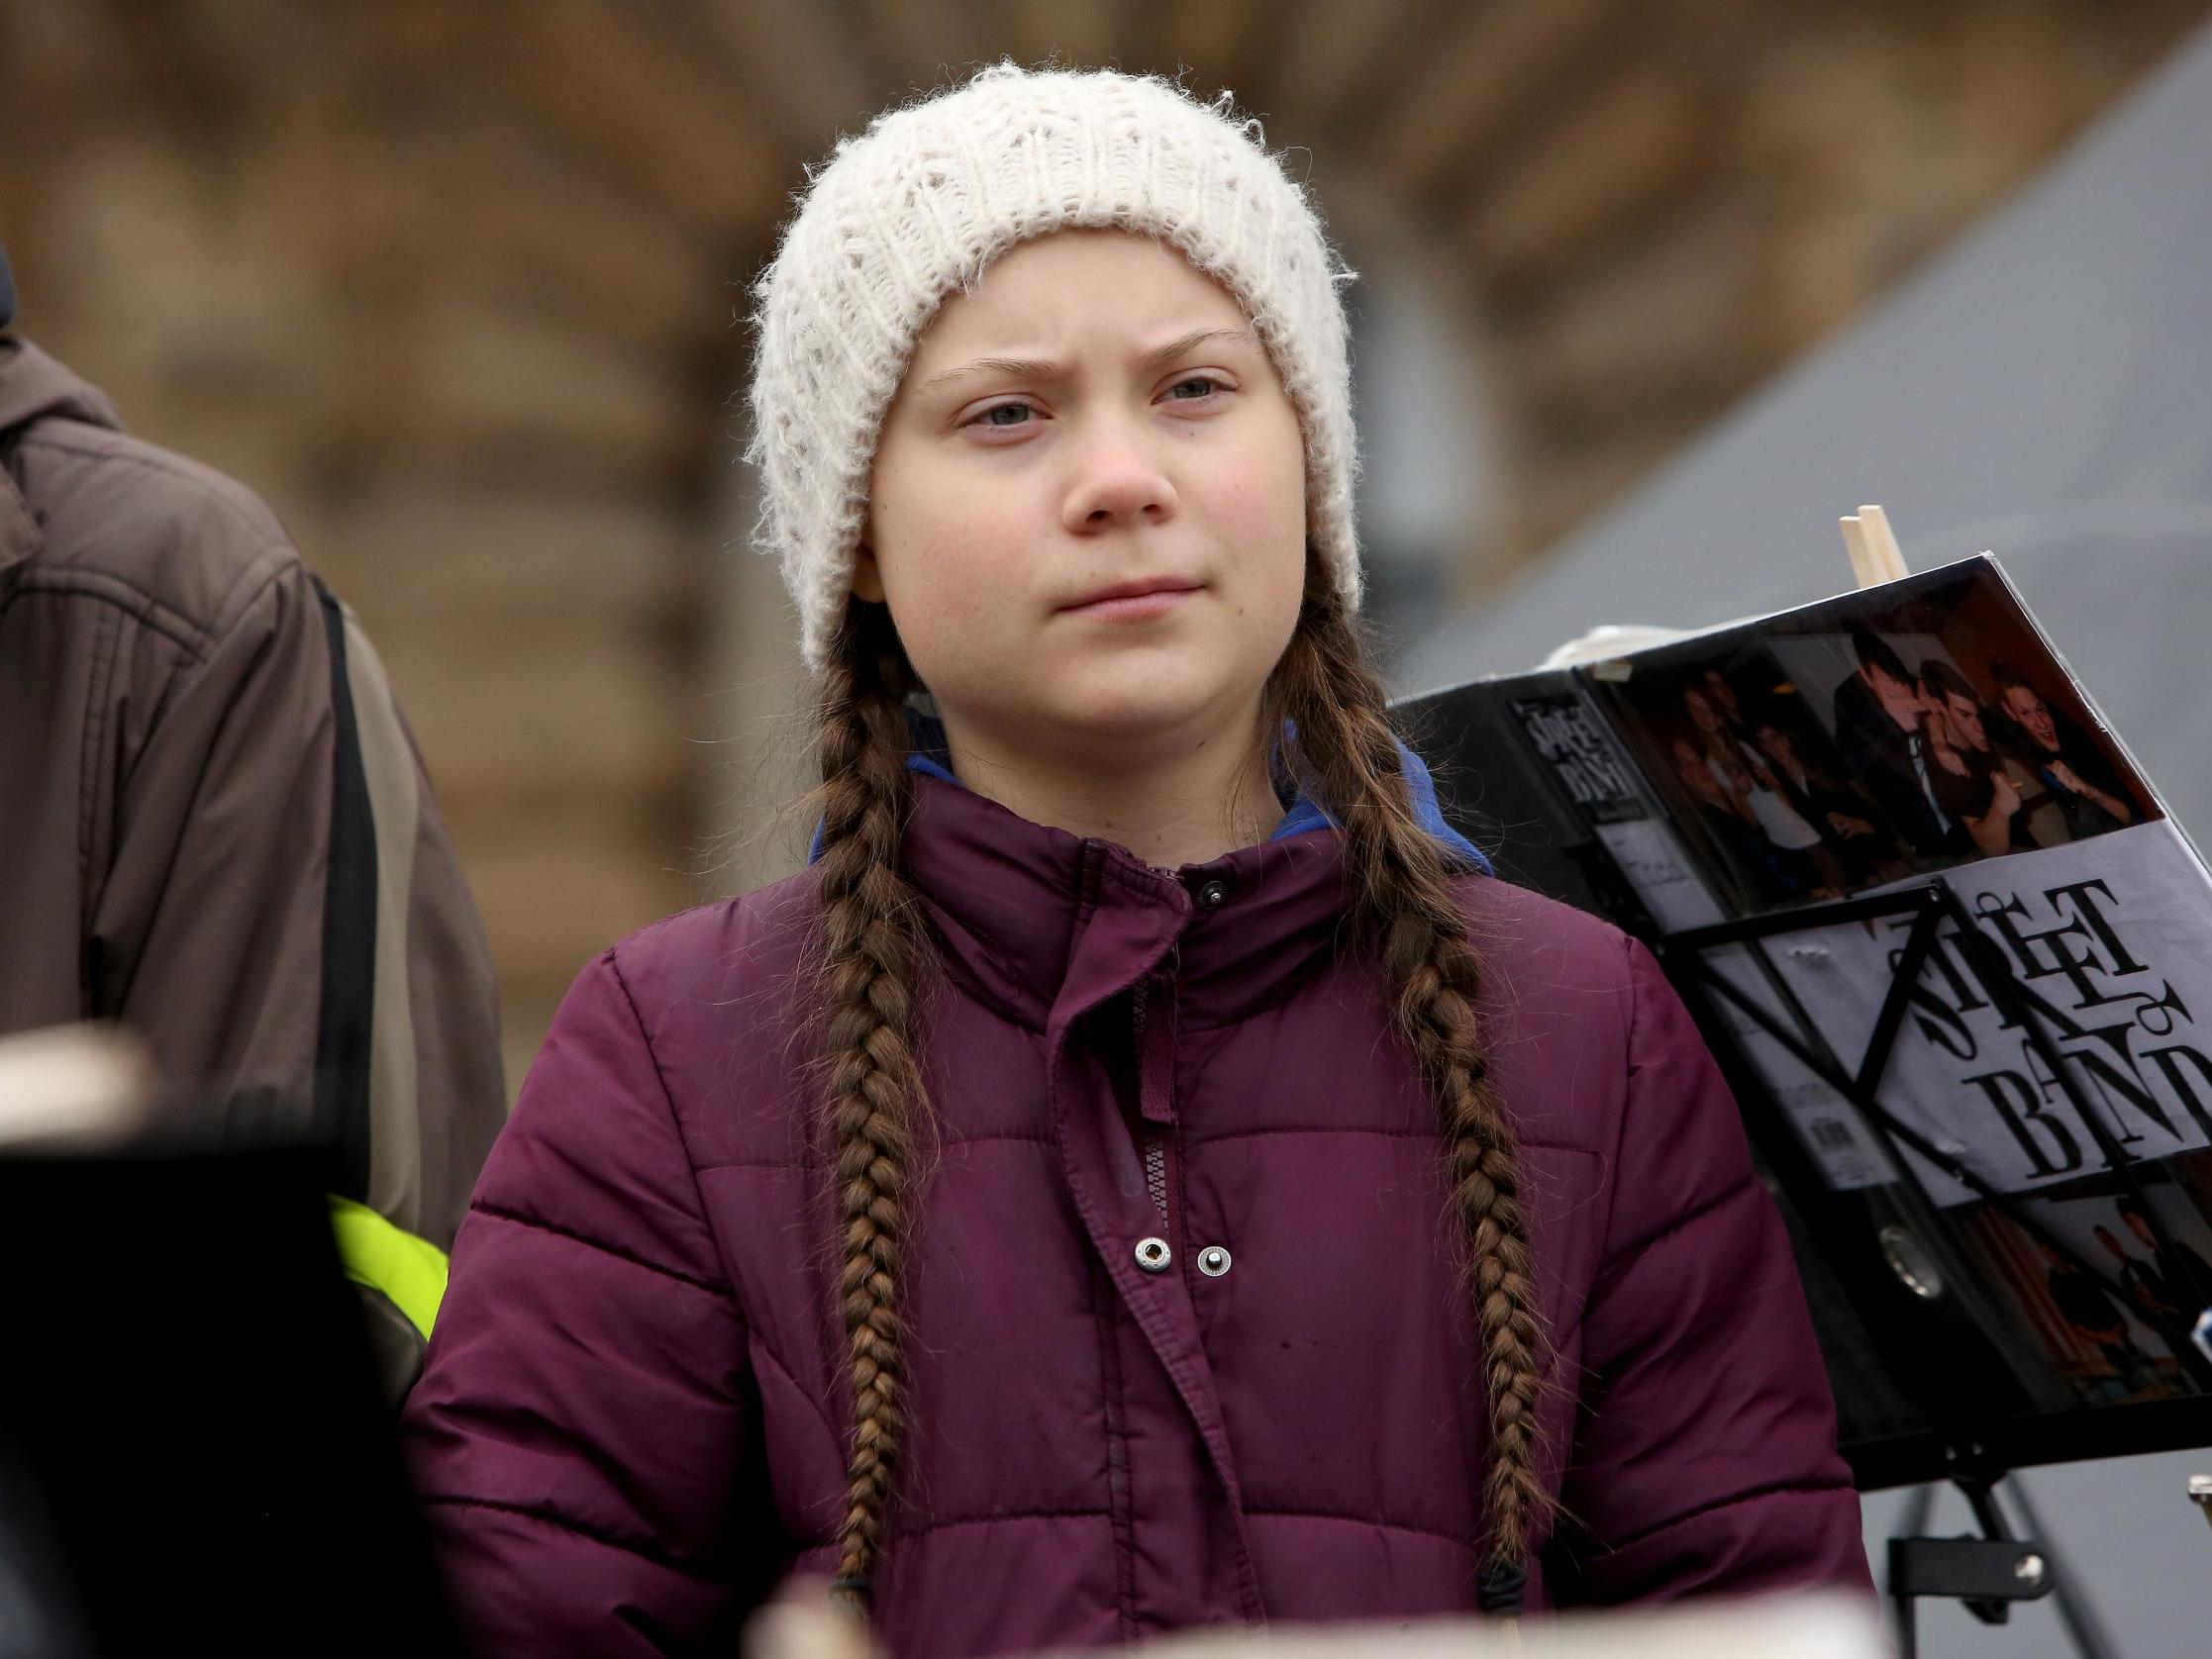 Greta Thunberg could become only the 18th woman to win Nobel Peace Prize in 118 years